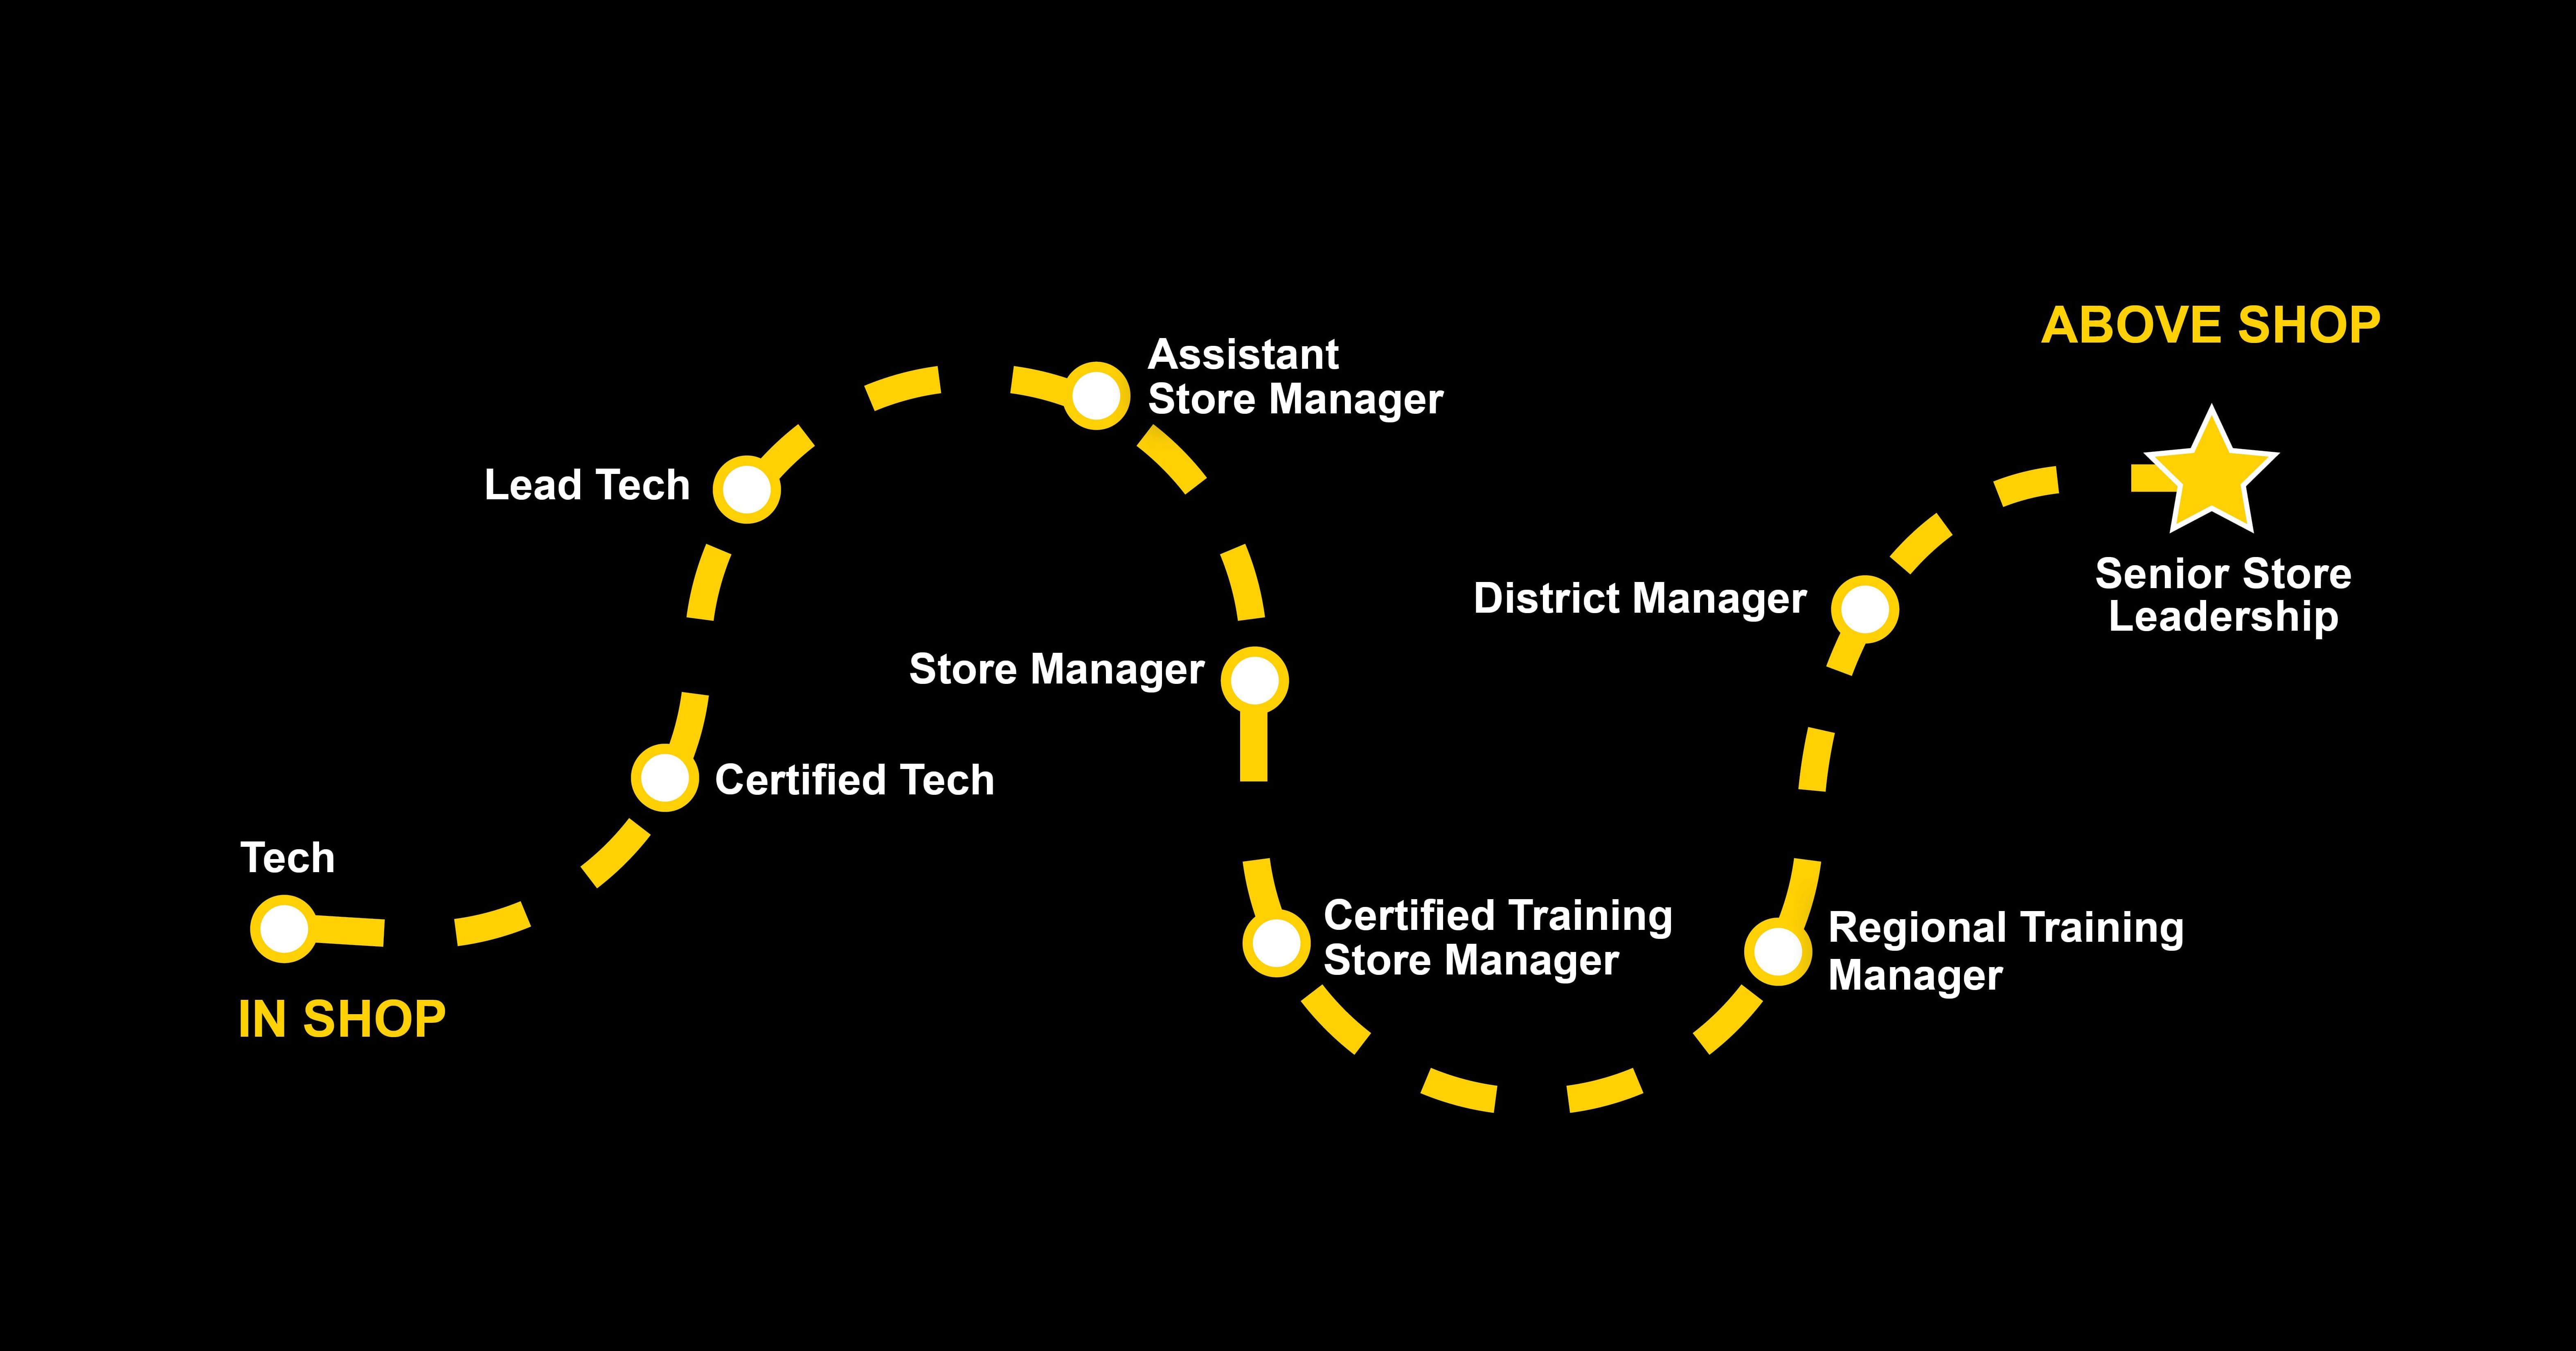 Roadmap from Tech to Senior Store Leadership